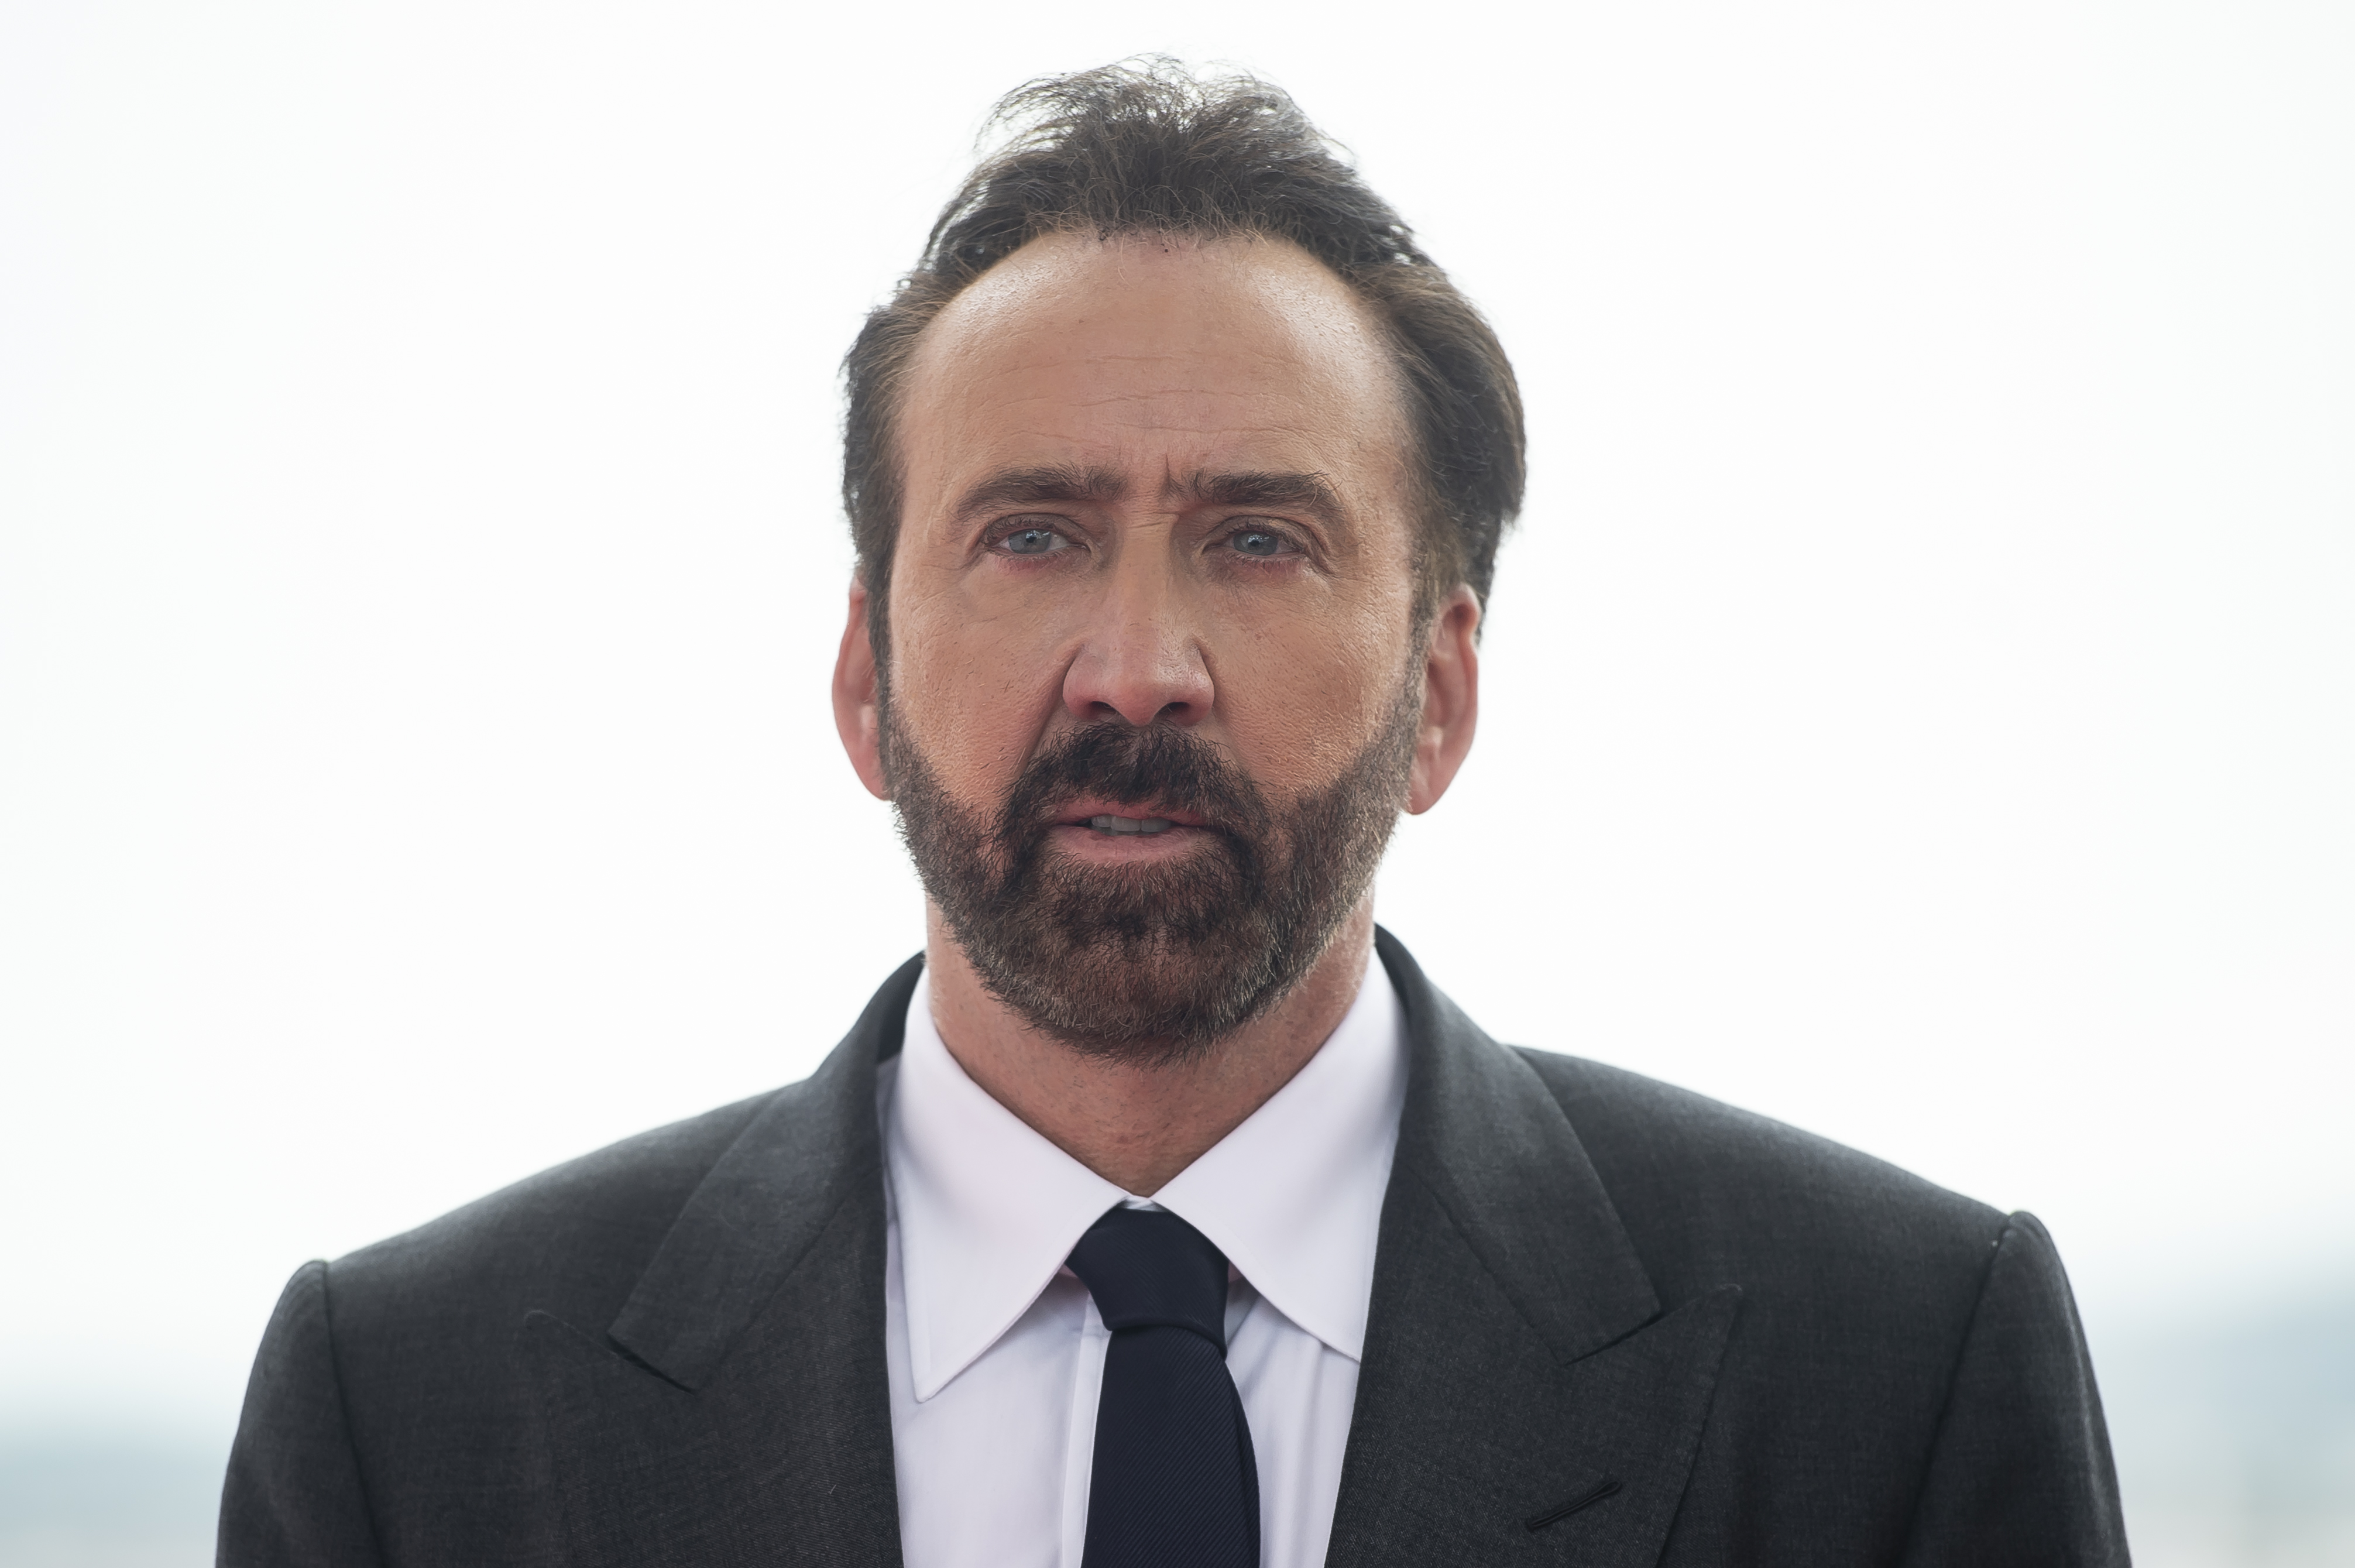 Nicolas Cage files for annulment 4 days after getting married